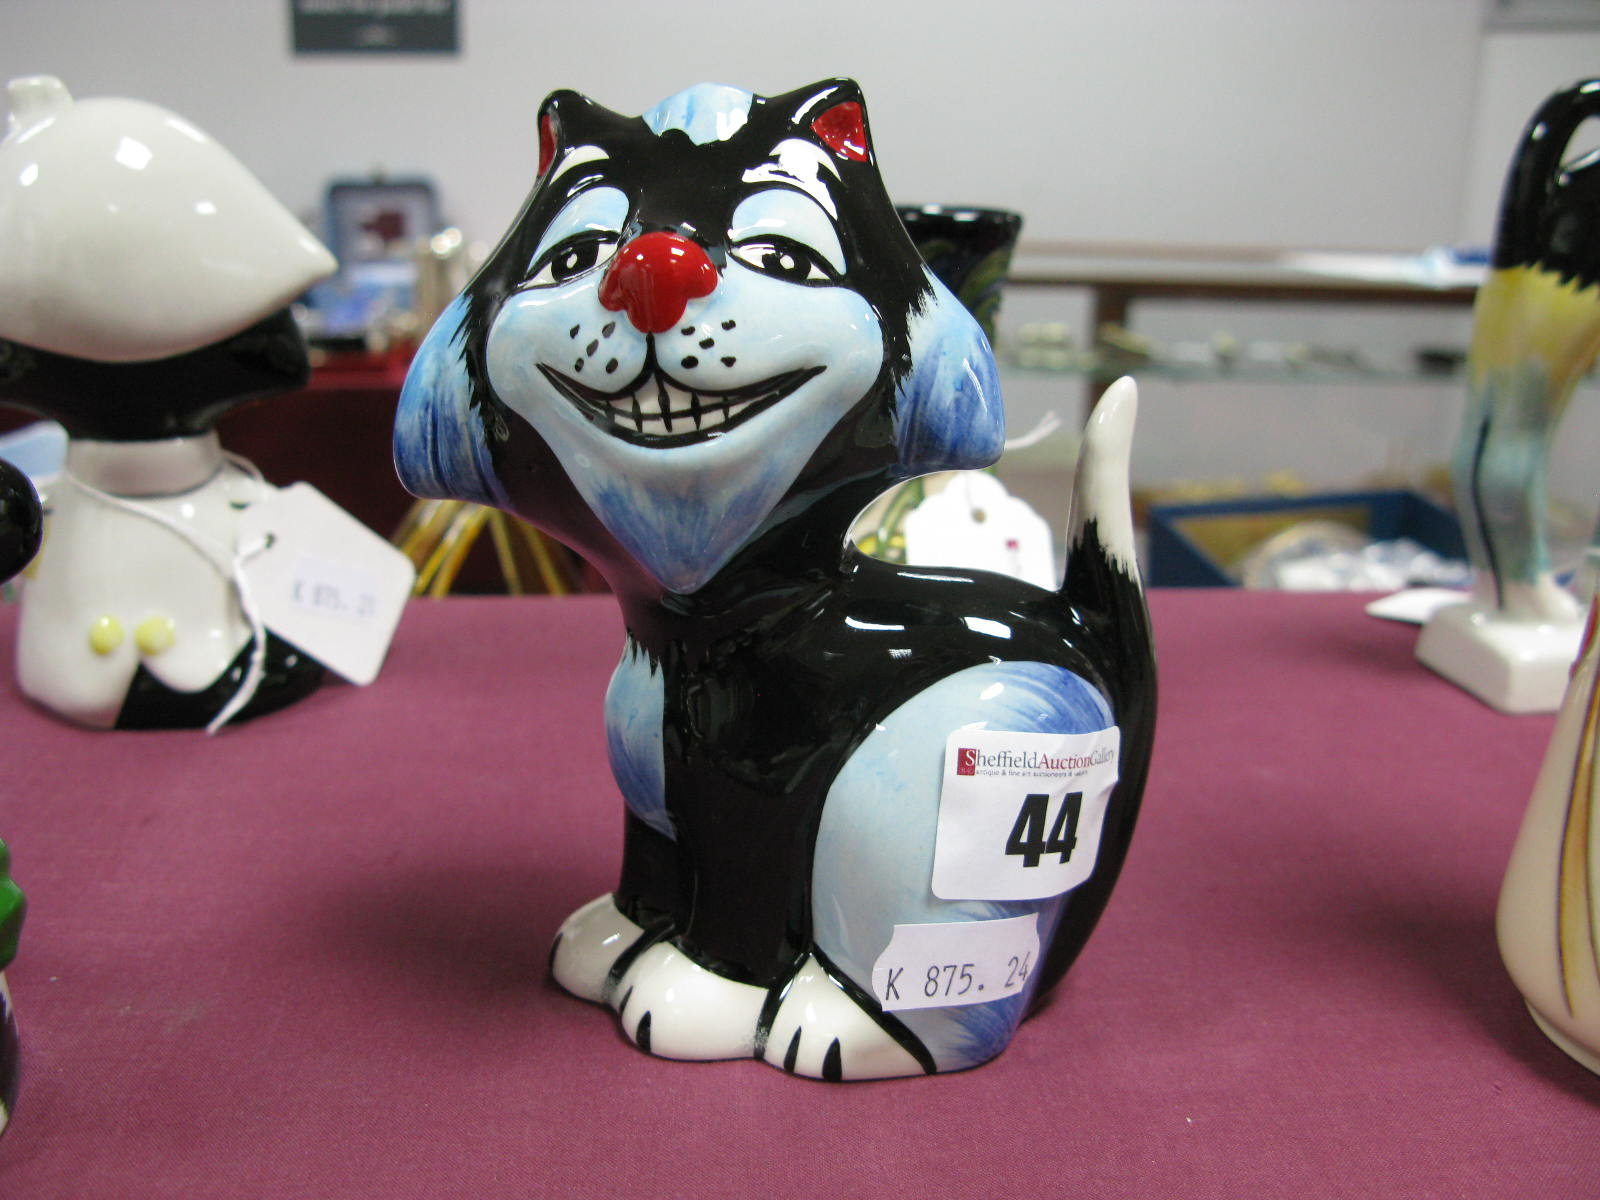 Lot 44 - Lorna Bailey - Gnasher the Cat, limited edition 1/1 in this colourway.